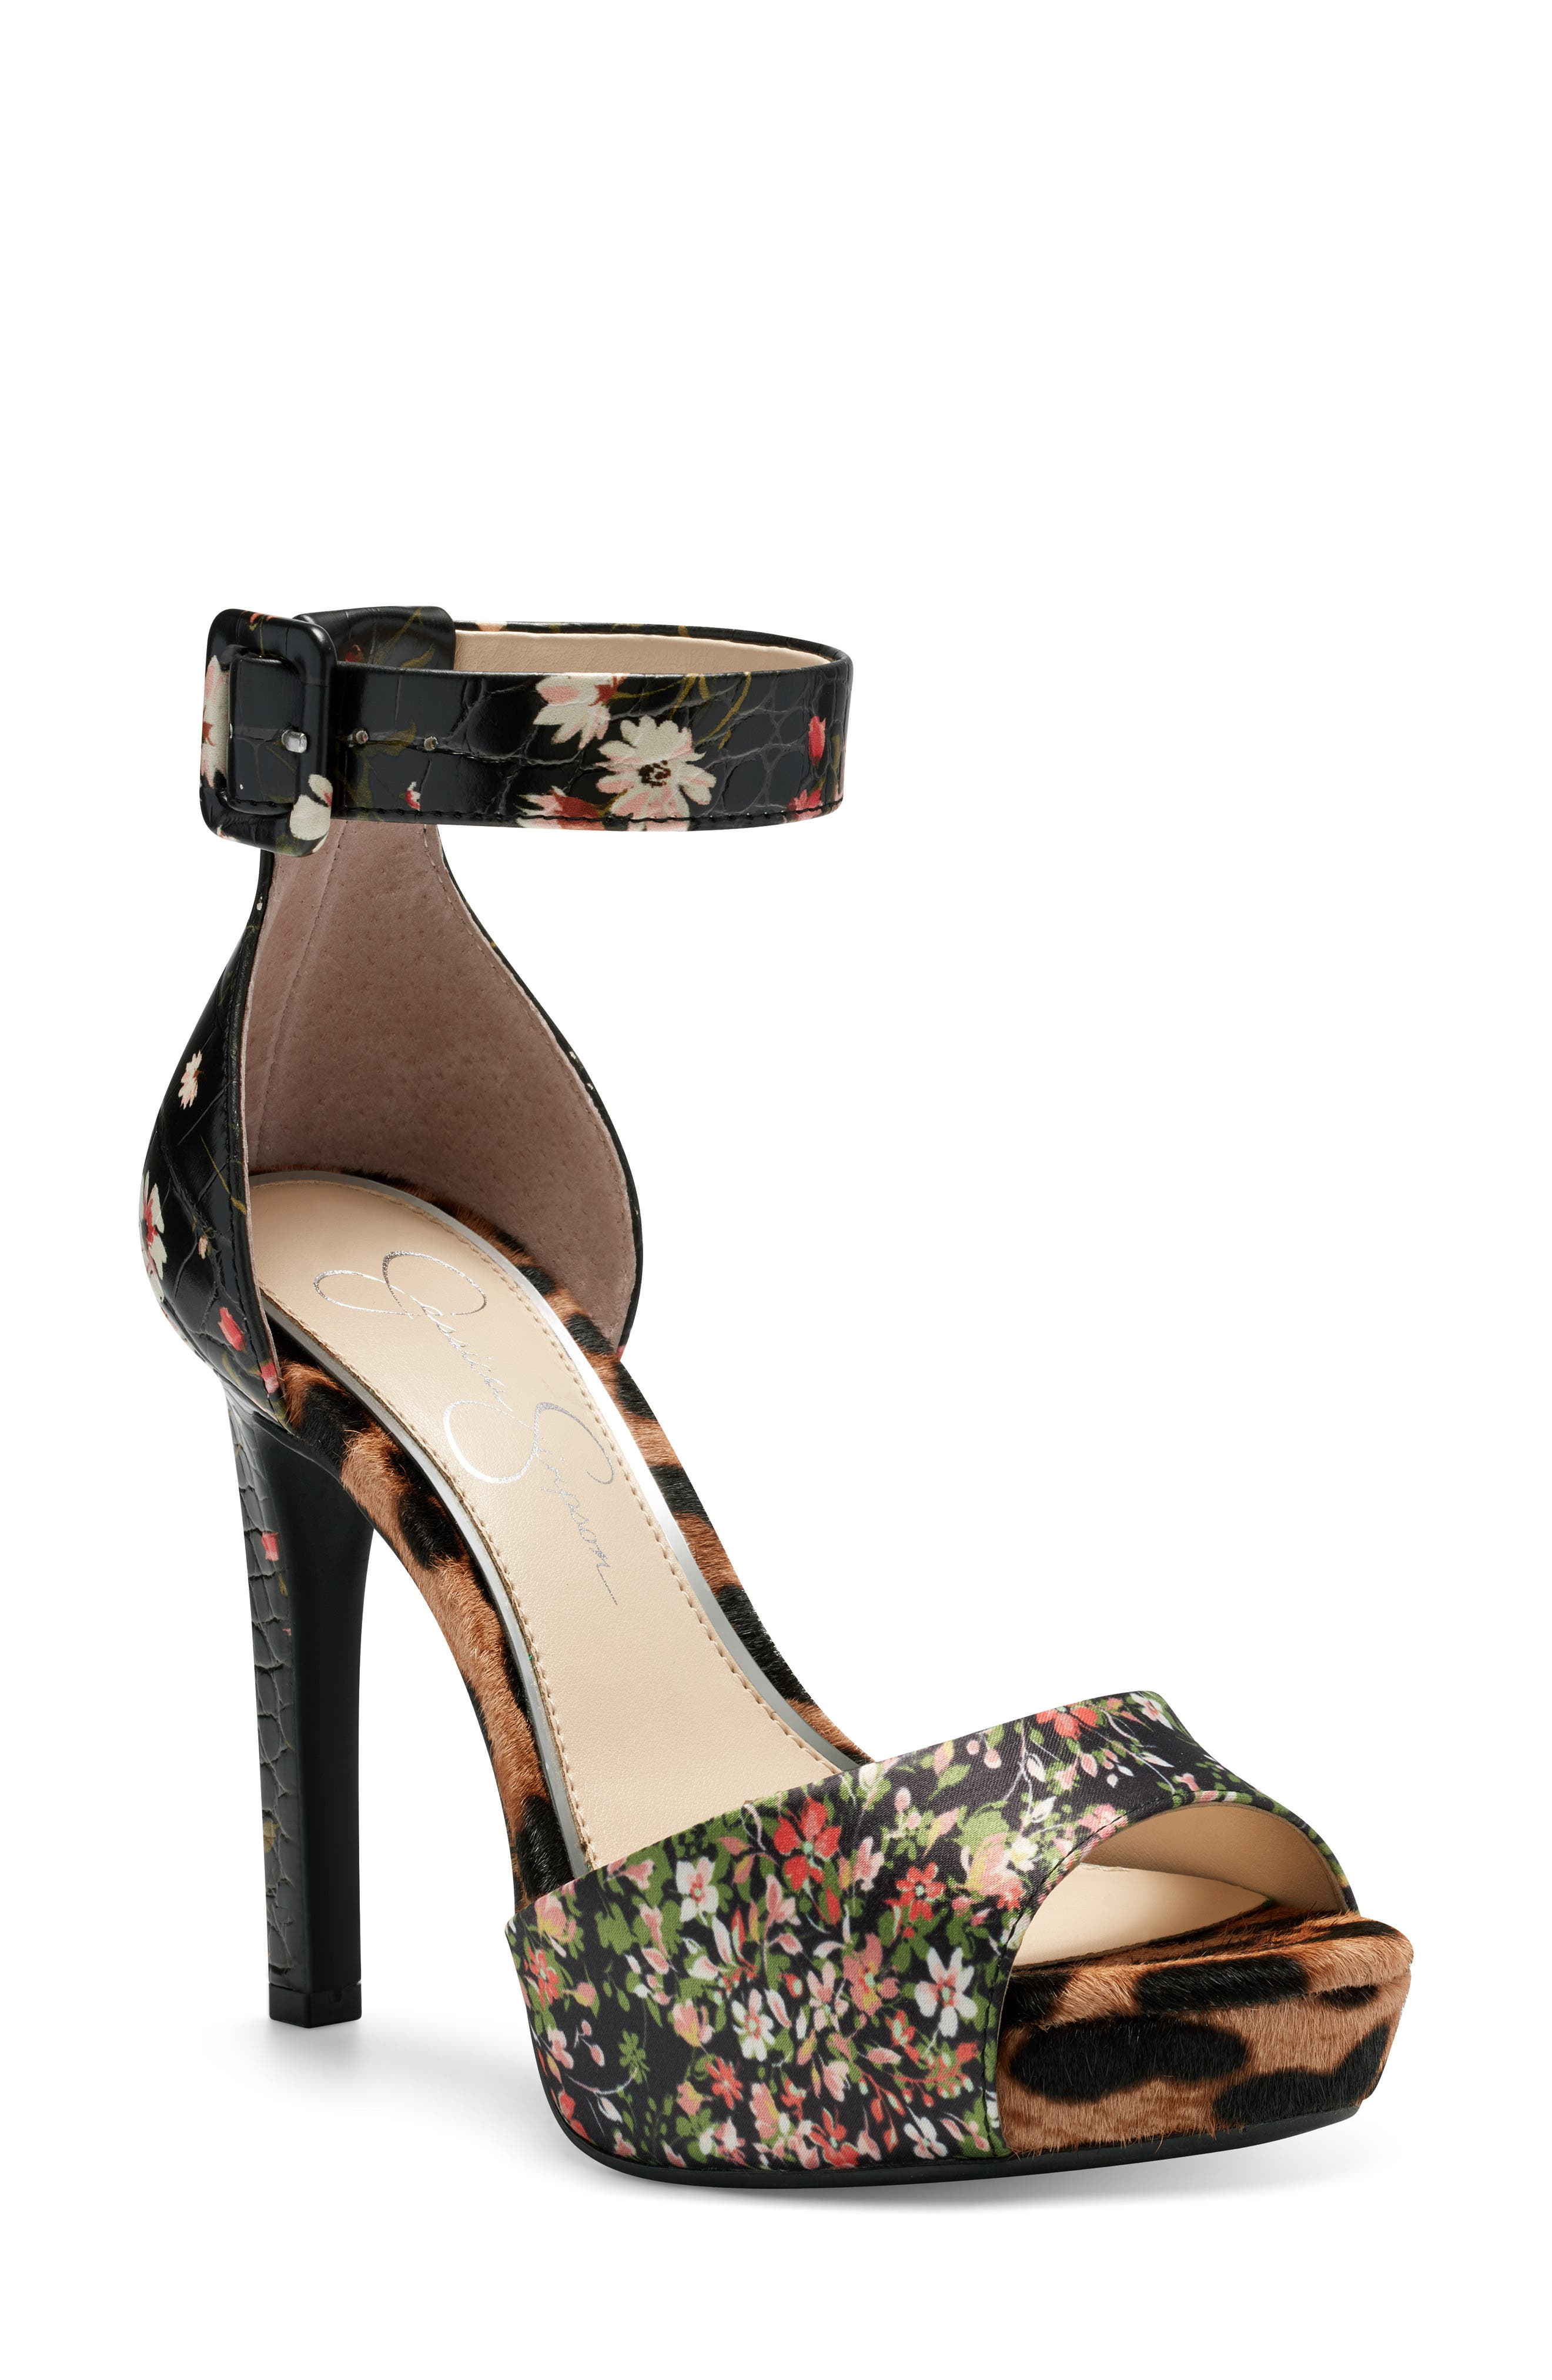 Mixed patterns heighten the eclectic retro style of this standout platform sandal. Style Name: Jessica Simpson Divene Sandal (Women). Style Number: 5869758 3. Available in stores.